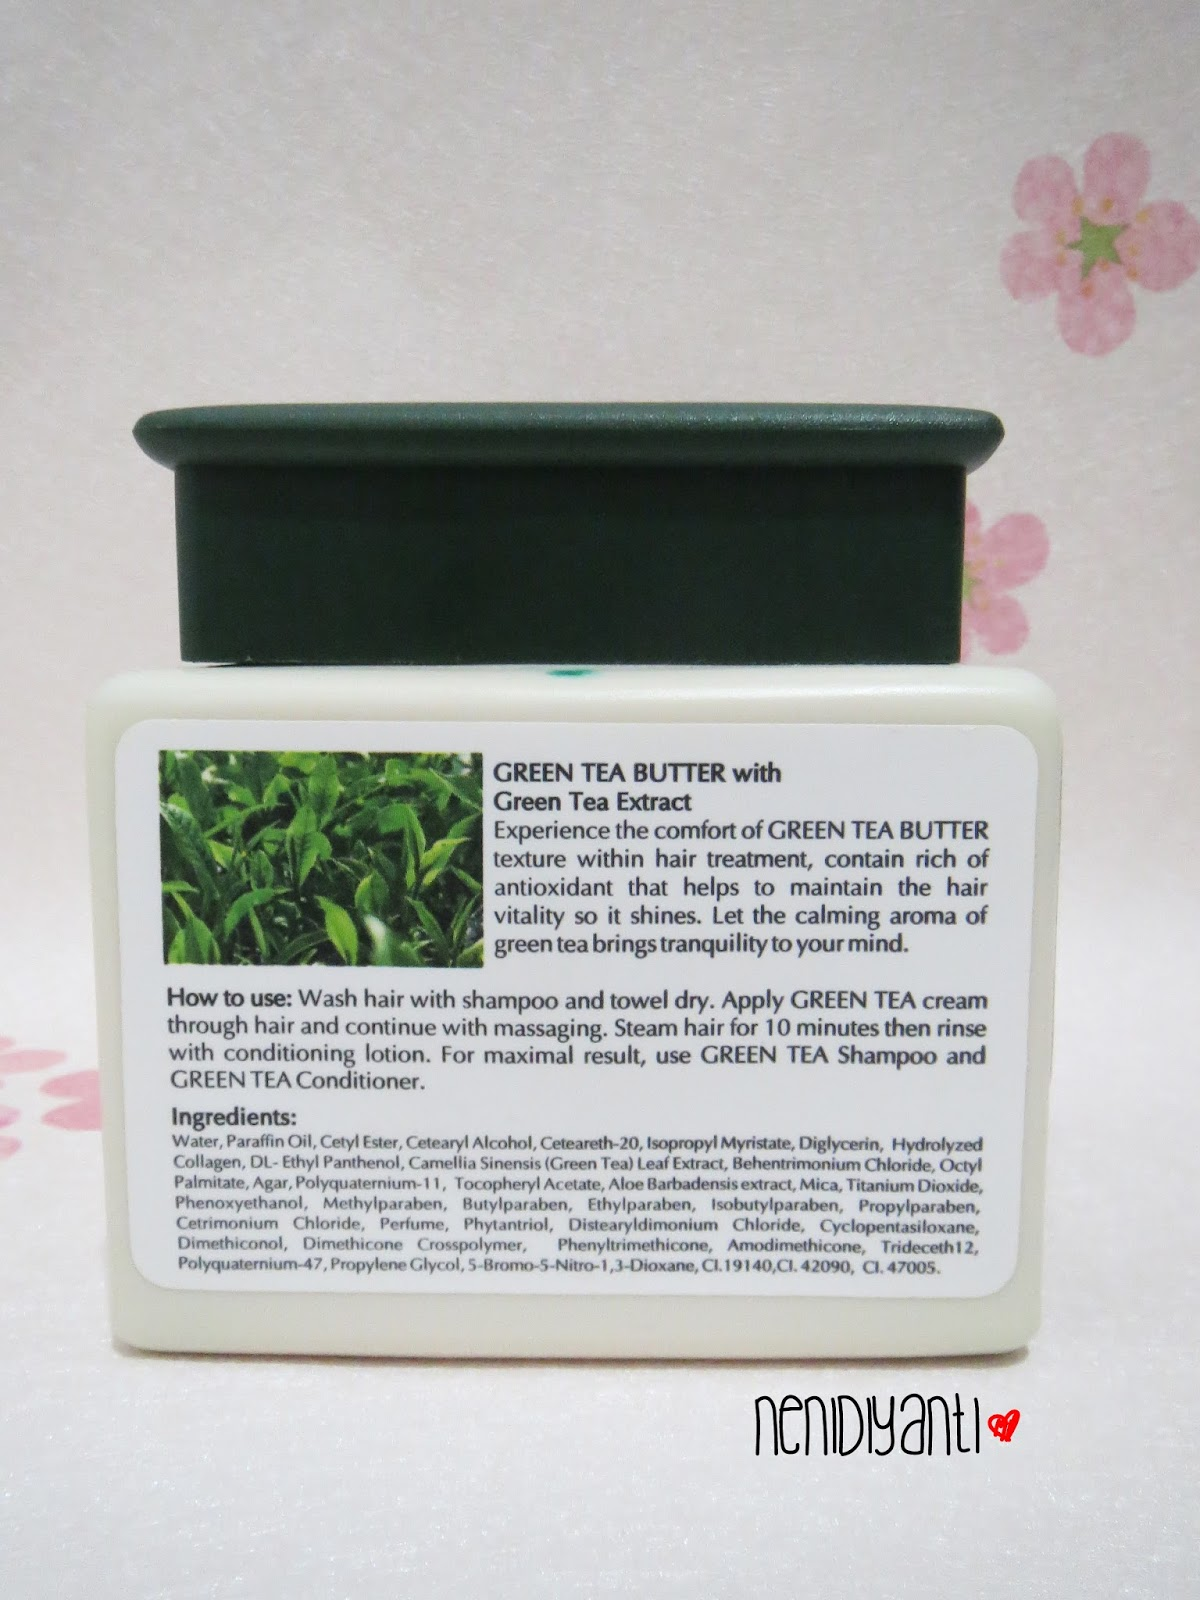 Kawaii Fuku Makarizo Hair Texture Experience Green Tea Butter Shampoo 250ml You Can Read The Instruction How To Use And Ingredients In Photo Above Text Is Also Written Bahasa As See Previous